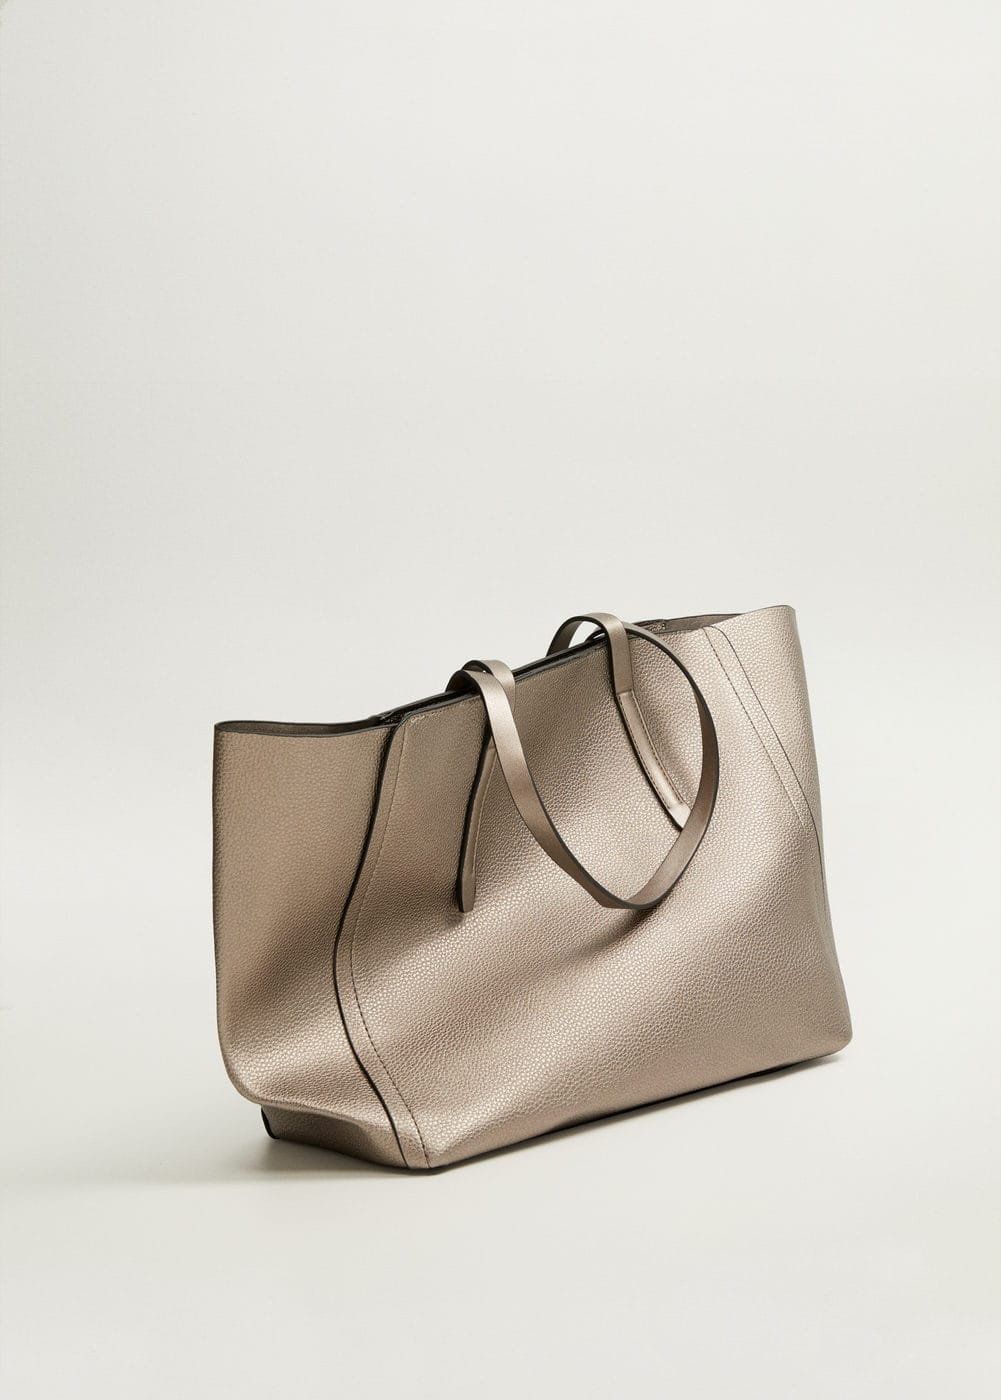 m-nuba:bolso shopper